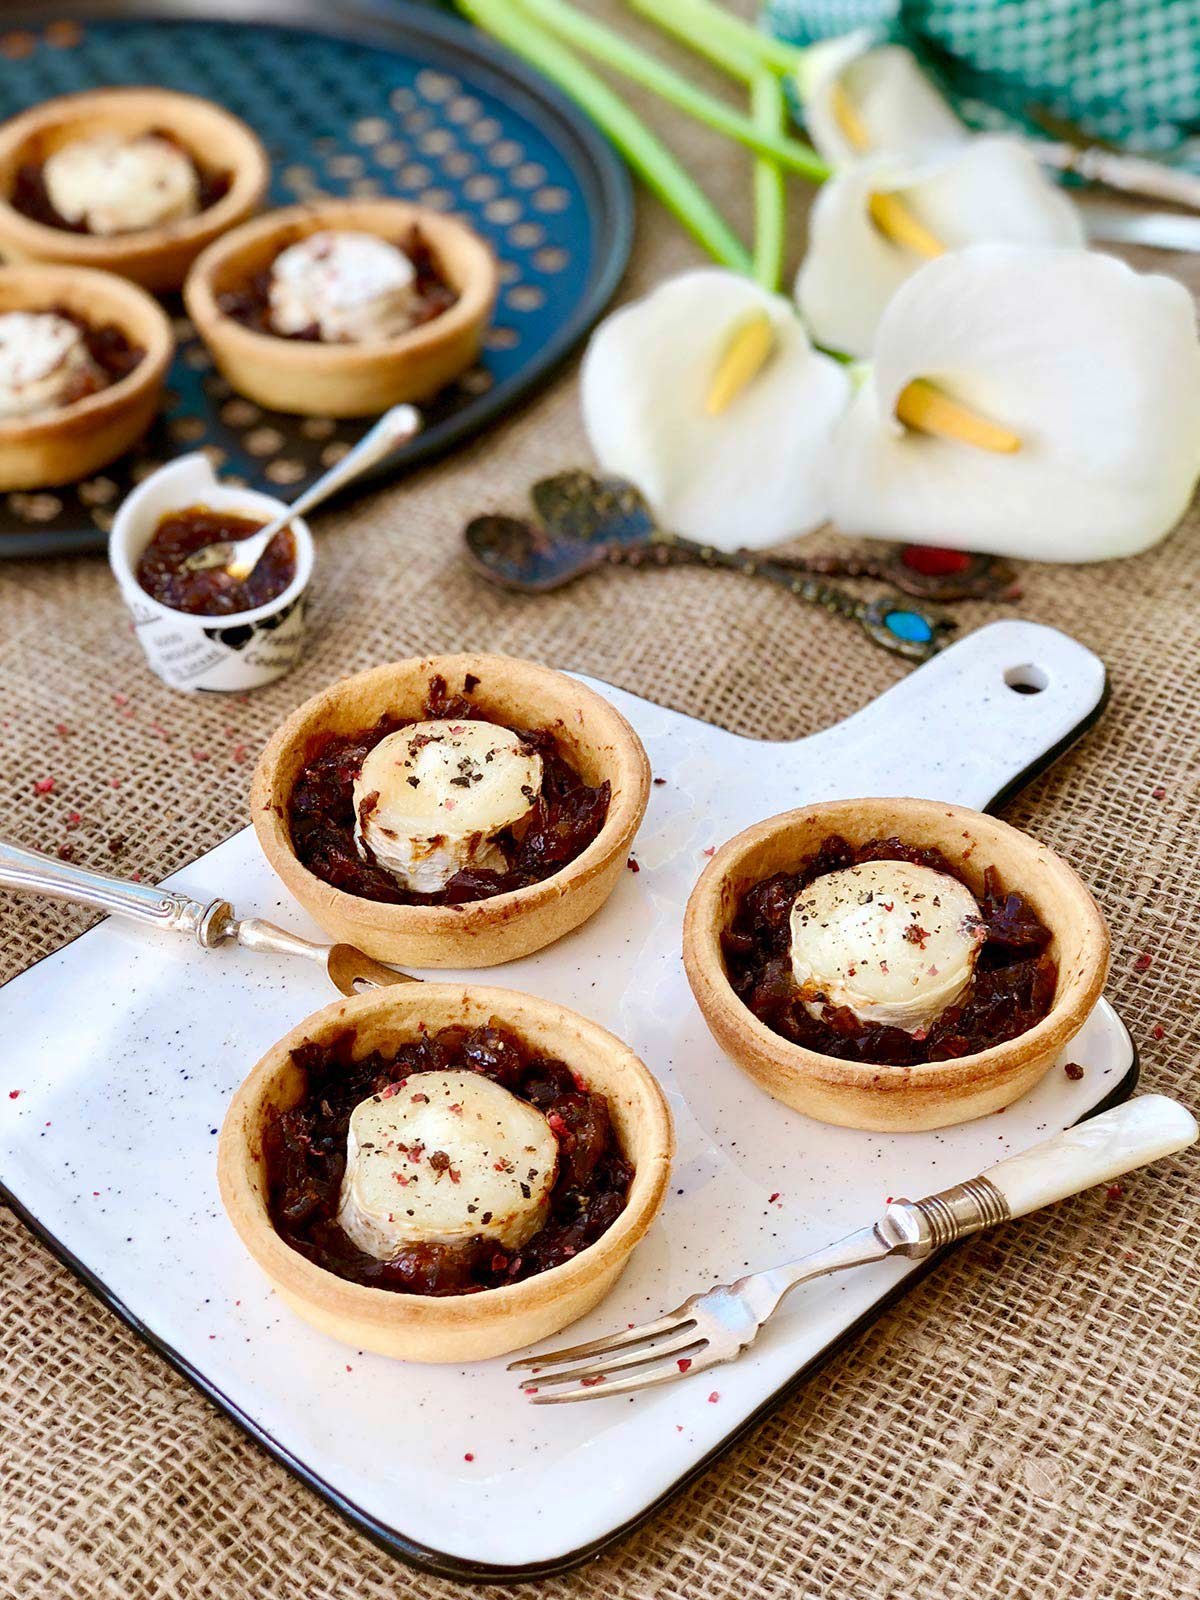 Goats cheese with homemade red onion chutney tartlets